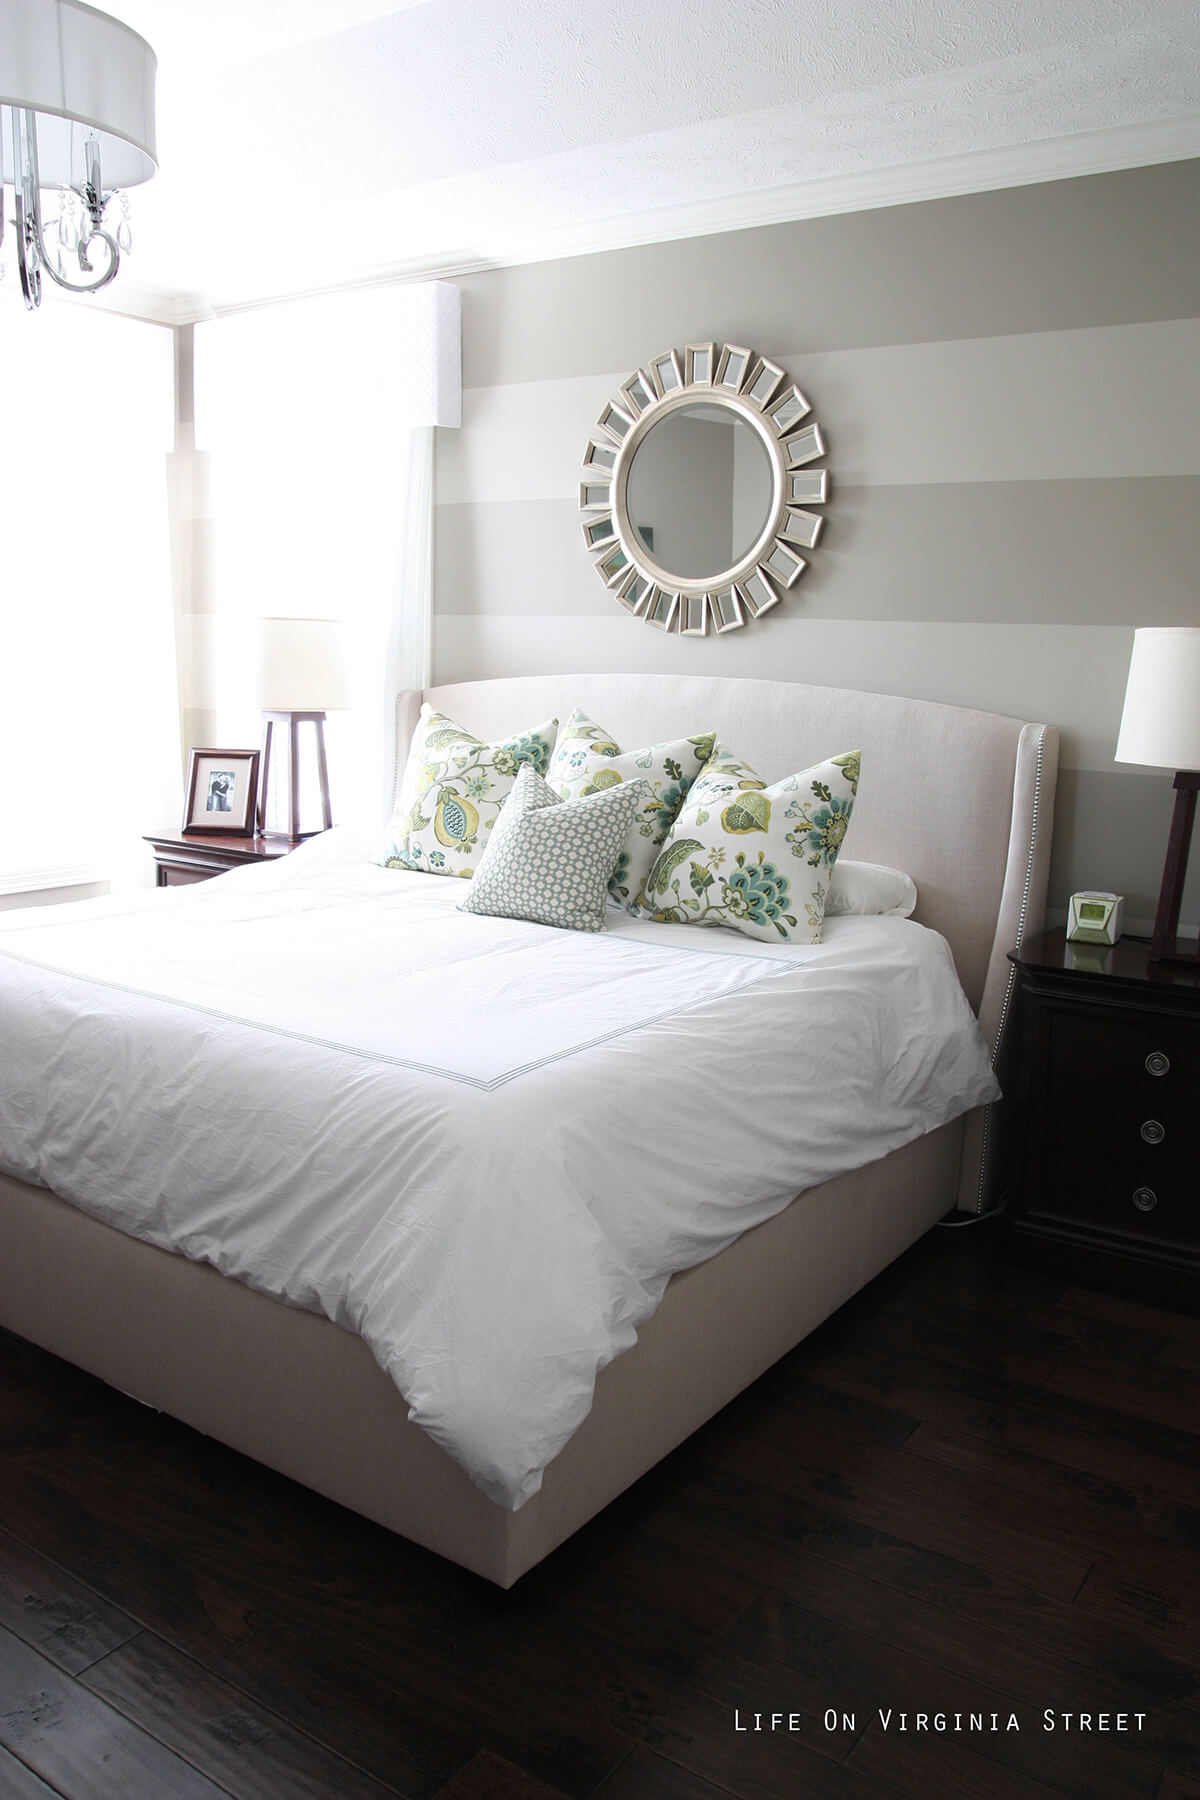 25+ Best Bedroom Wall Decor Ideas and Designs for 2020 on Bedroom Decoration Ideas  id=69911